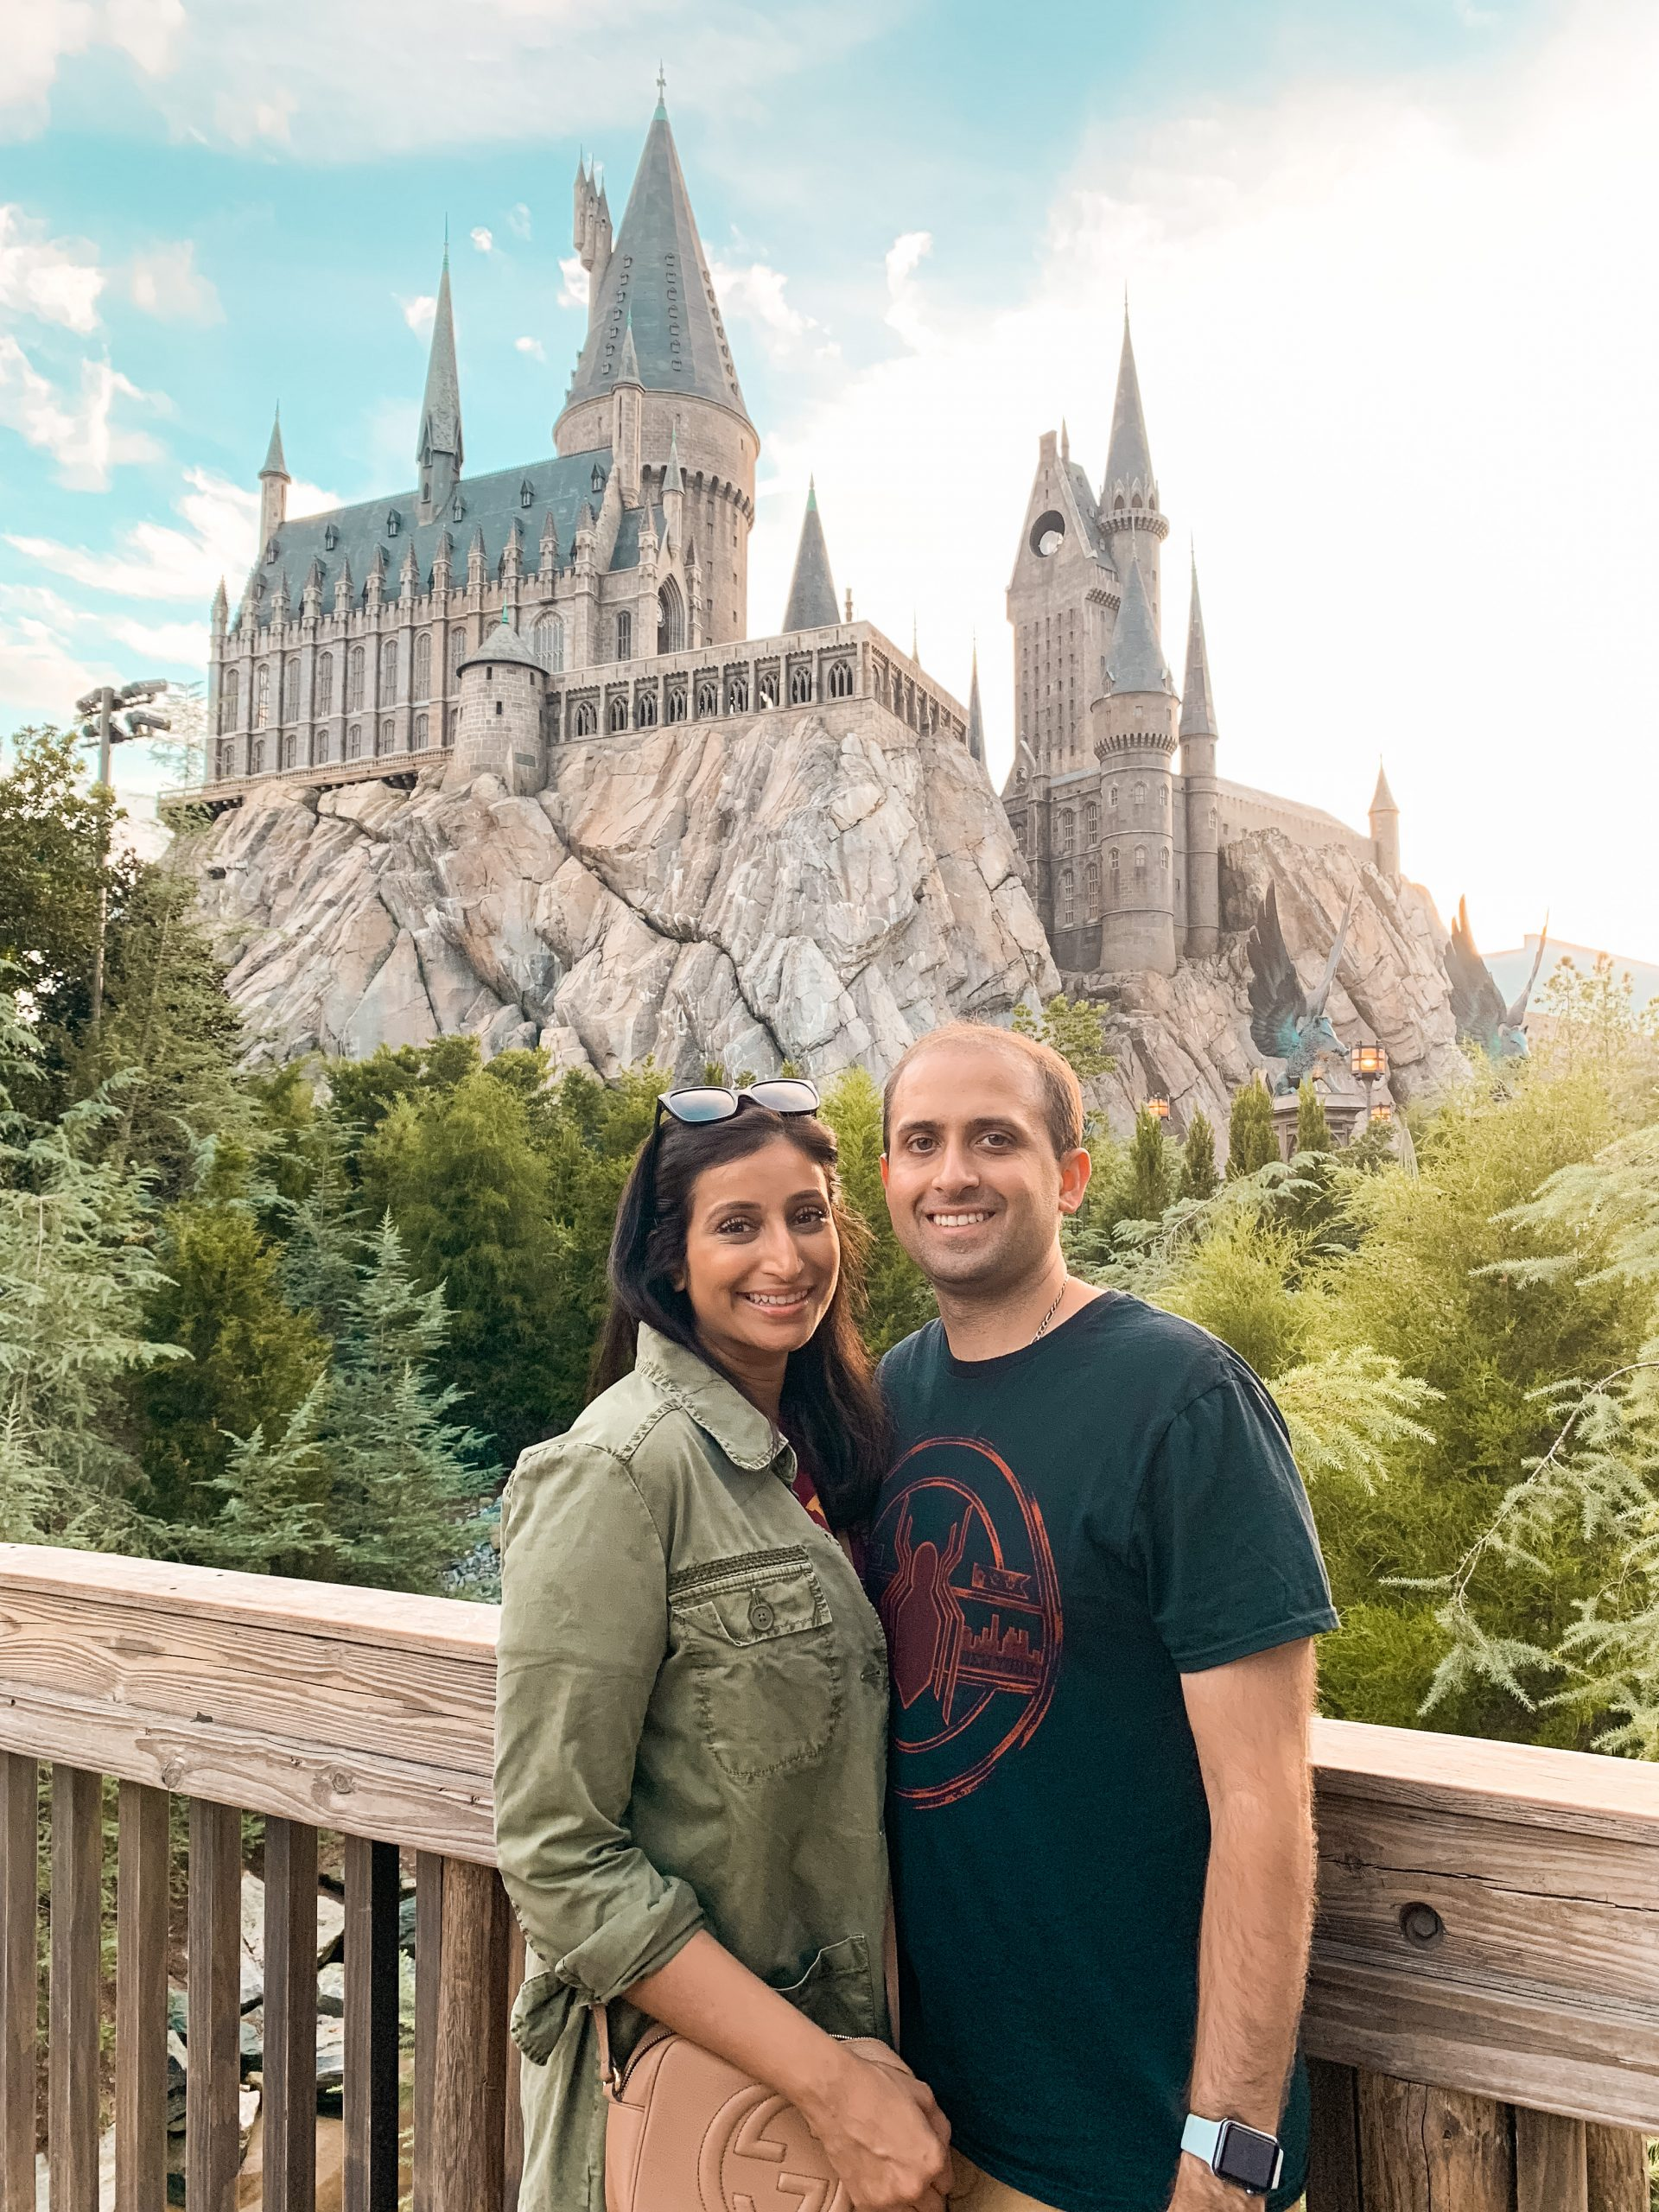 a picture of hubby and me outside Hogwarts at Wizarding World of Harry Potter